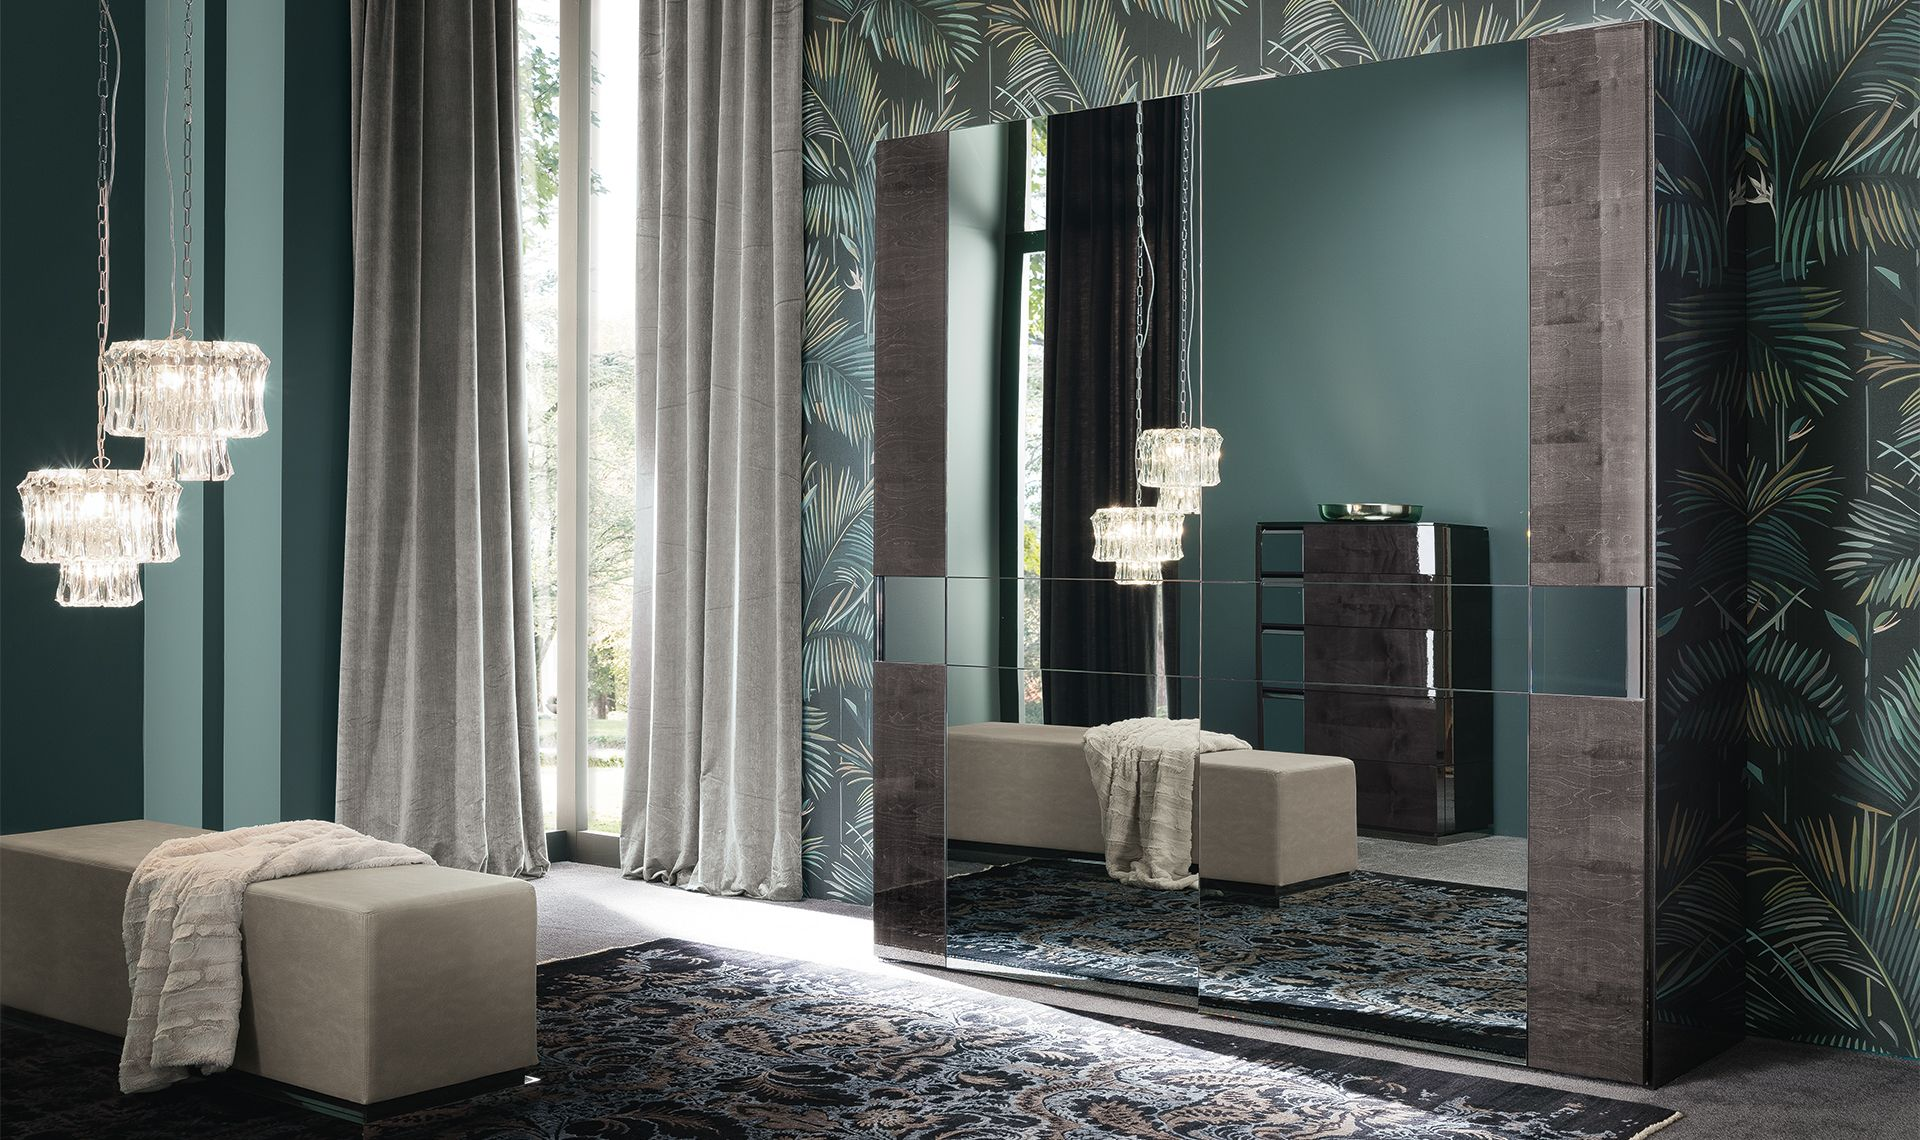 Heritage wardrobe by ALF | Italian furniture design, Italian interior design, Contemporary bedroom